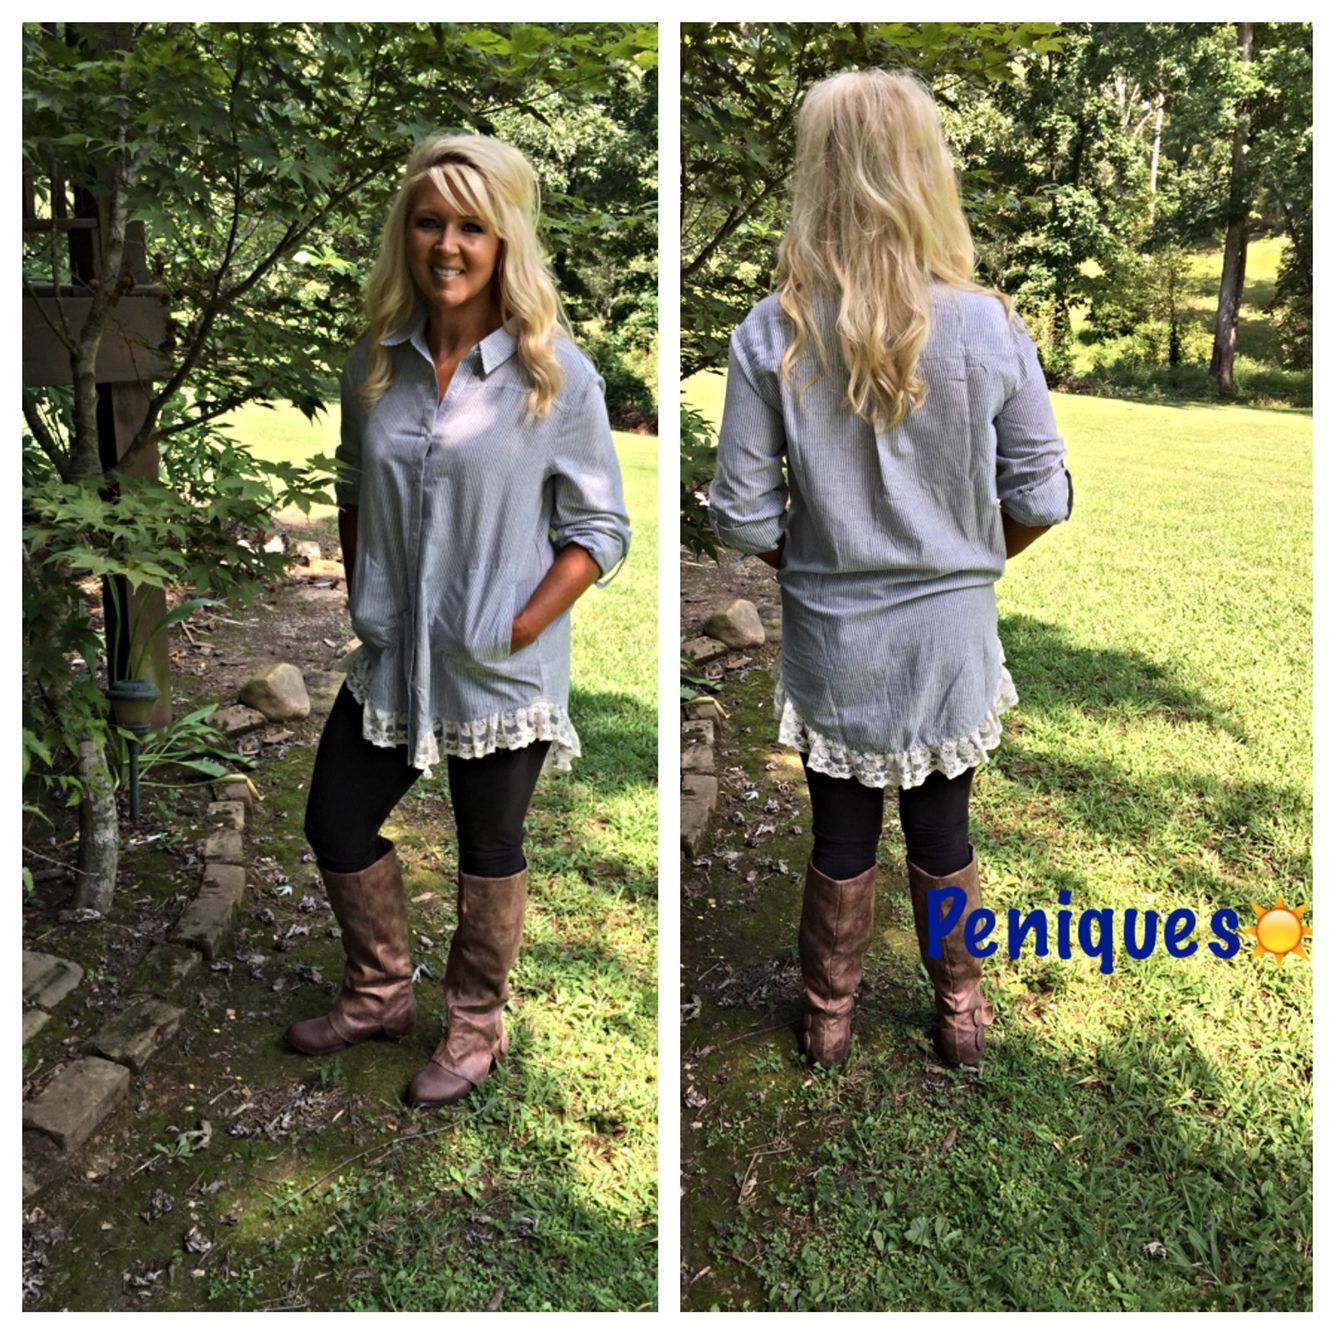 This tunic is so cute!